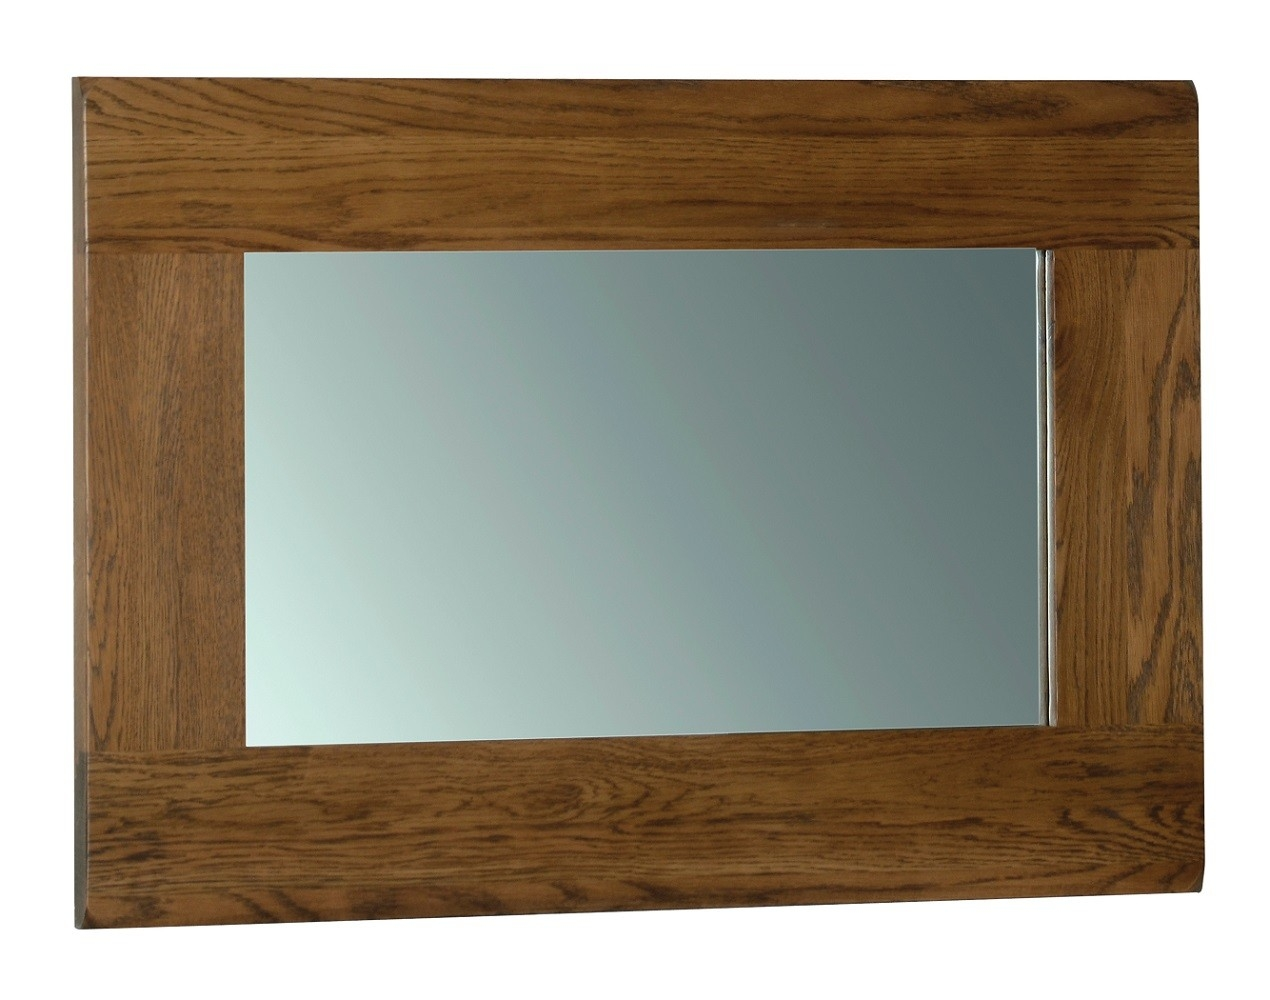 Edinburgh Rustic Oak 90 X 60cm Mirror Oak Furniture Uk With Regard To Rustic Oak Mirror (Image 1 of 15)